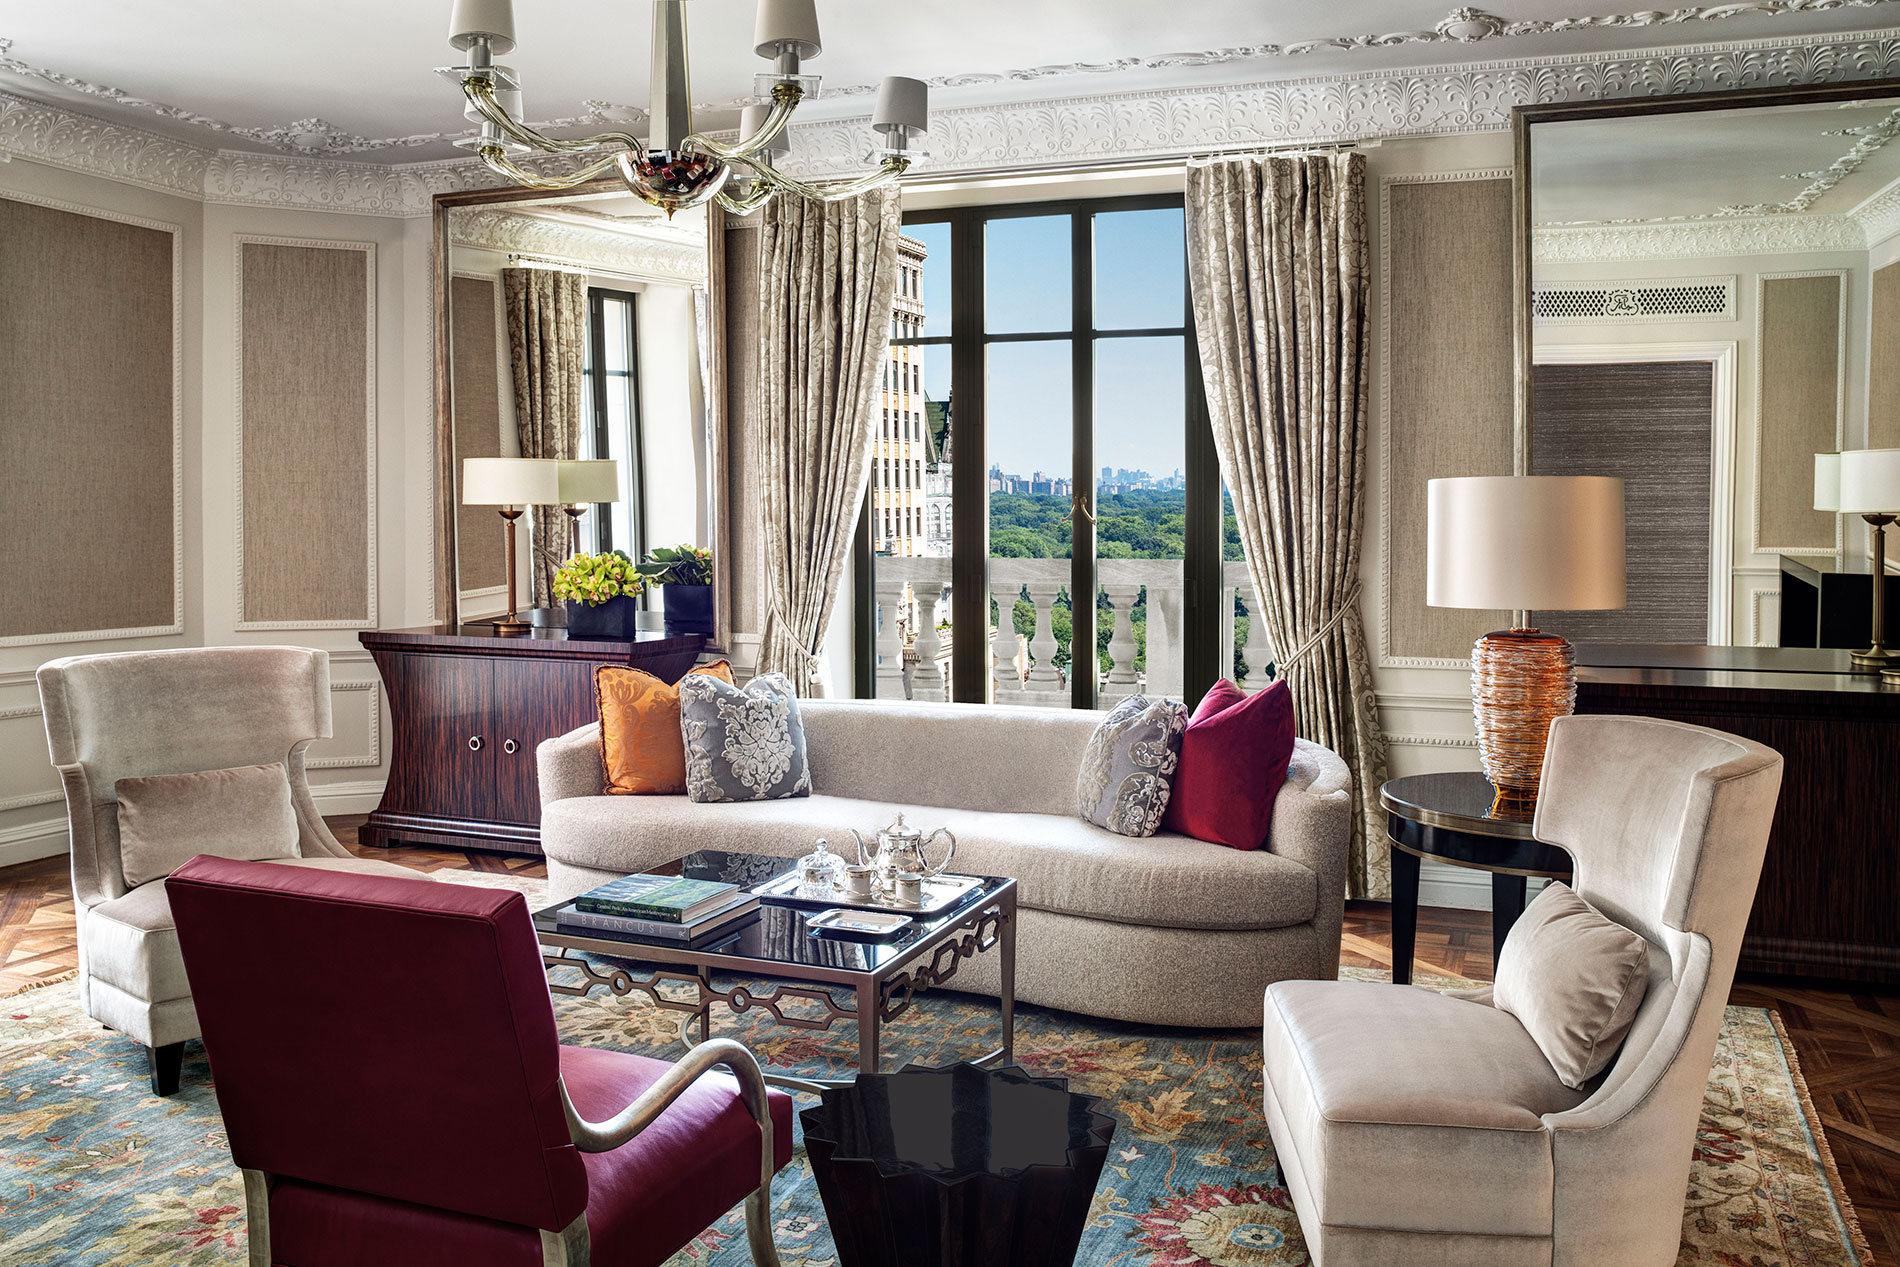 The St Regis New York Debuts a New Era of Glamour : 153048517 from www.hospitalitynet.org size 1900 x 1267 jpeg 640kB